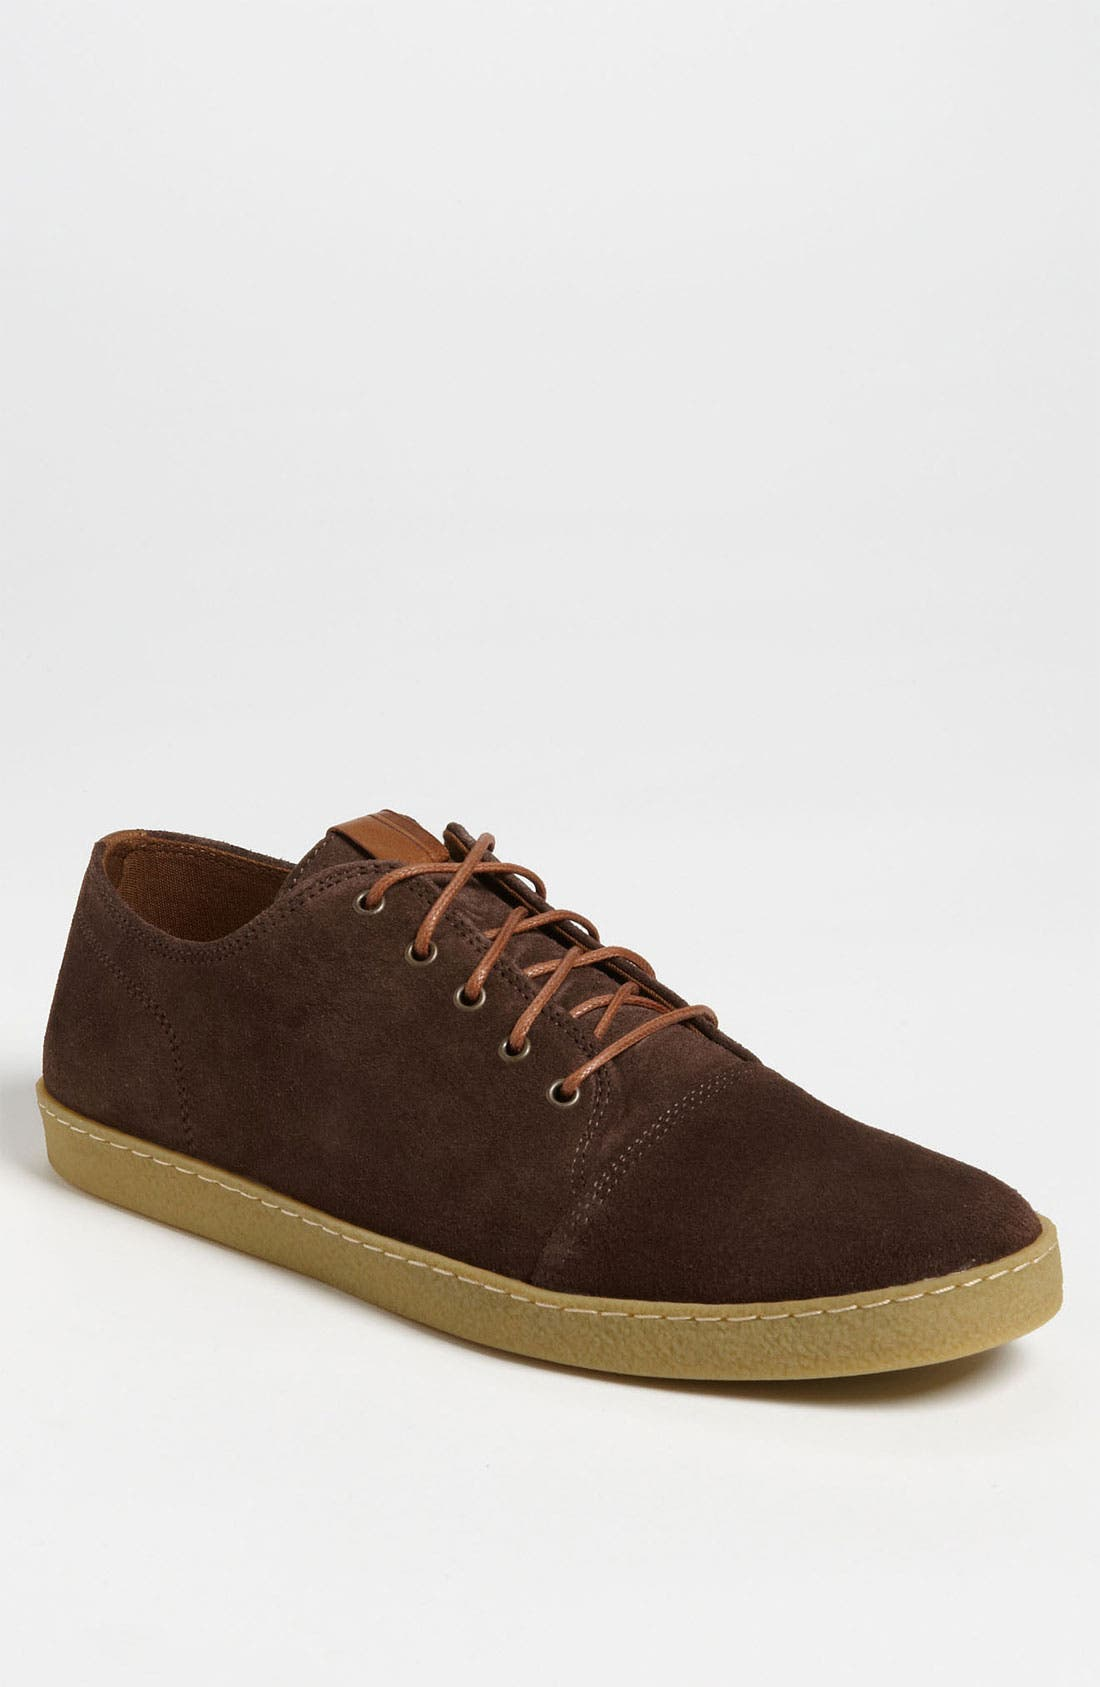 Main Image - Fred Perry 'Deighton' Suede Sneaker